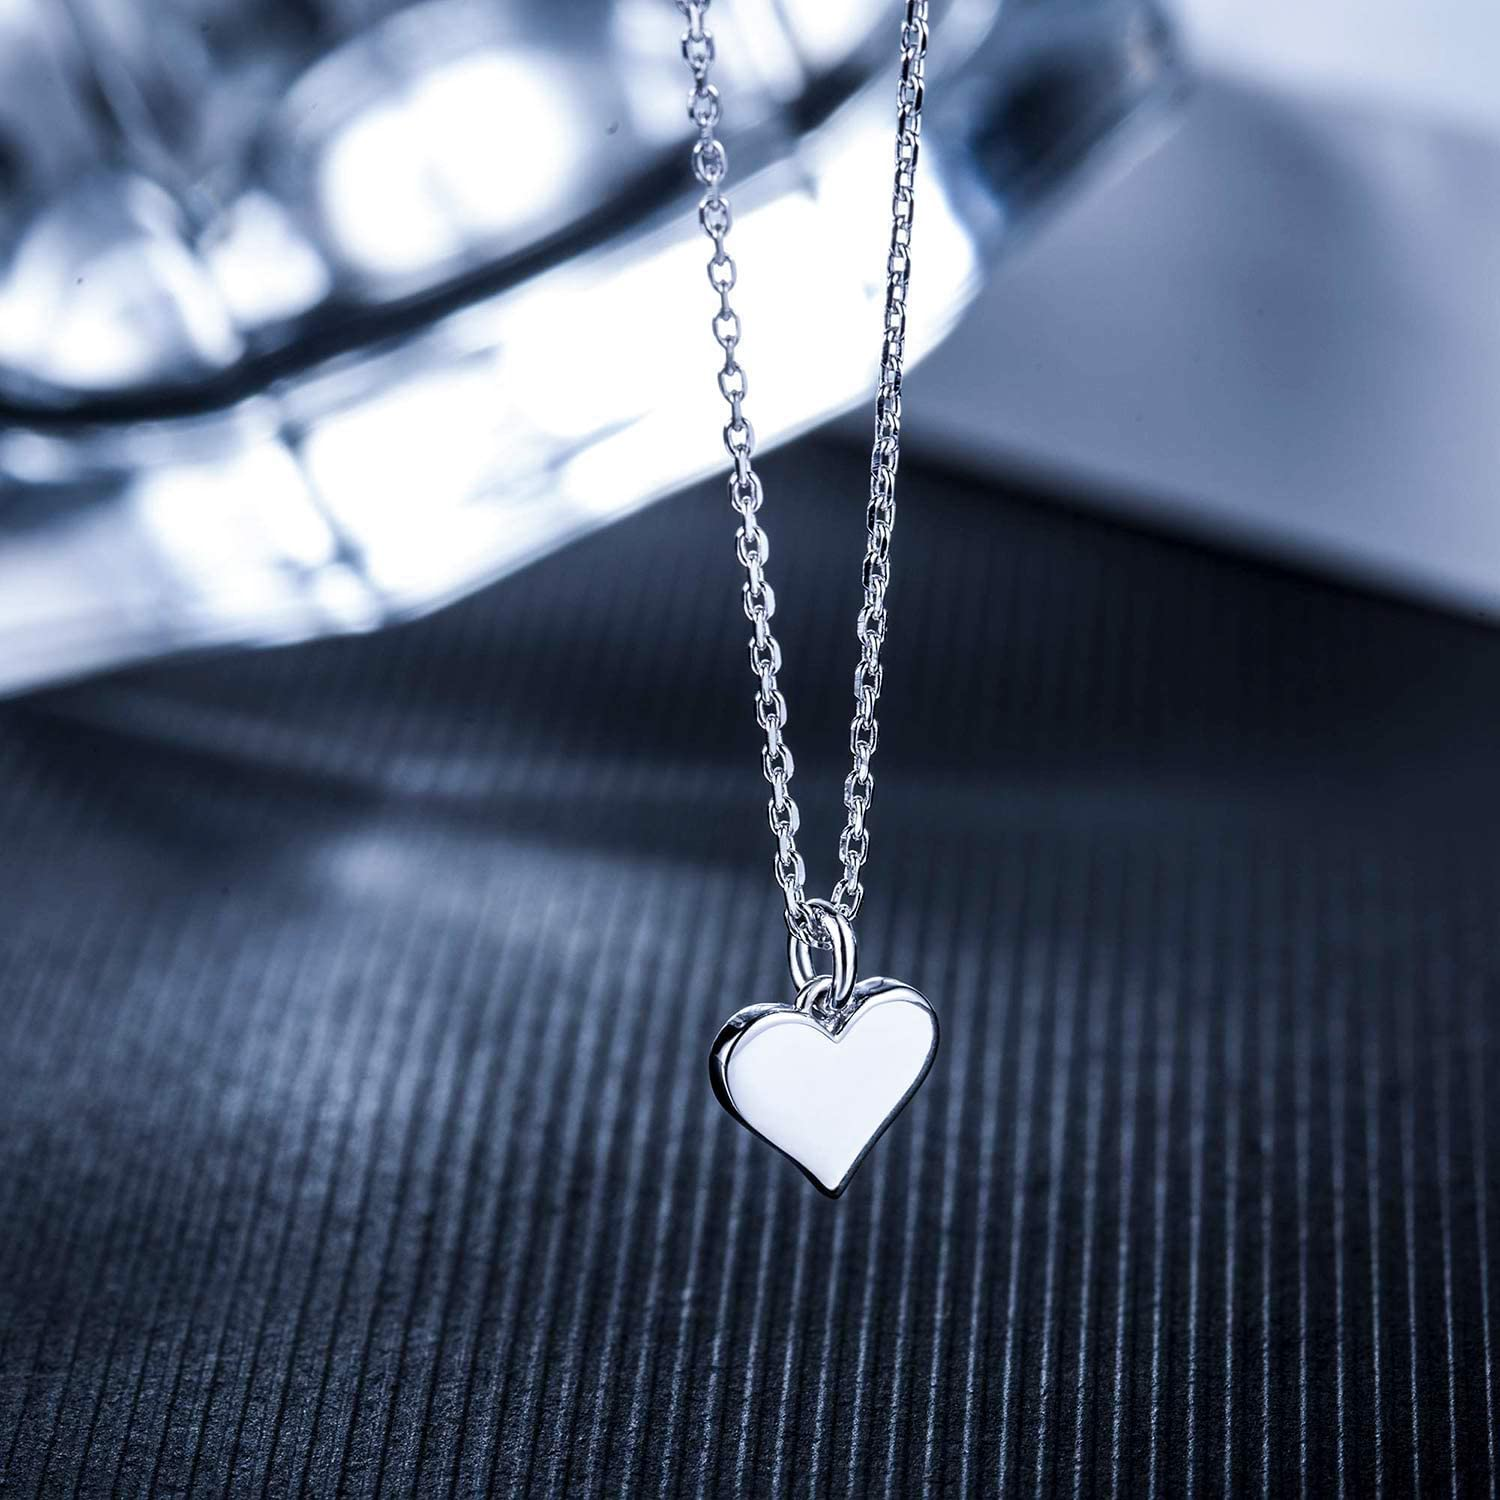 Cutout Heart Necklaces 2 Sterling Silver Necklaces Chiclove Mother Daughter Jewelry Sets for Two